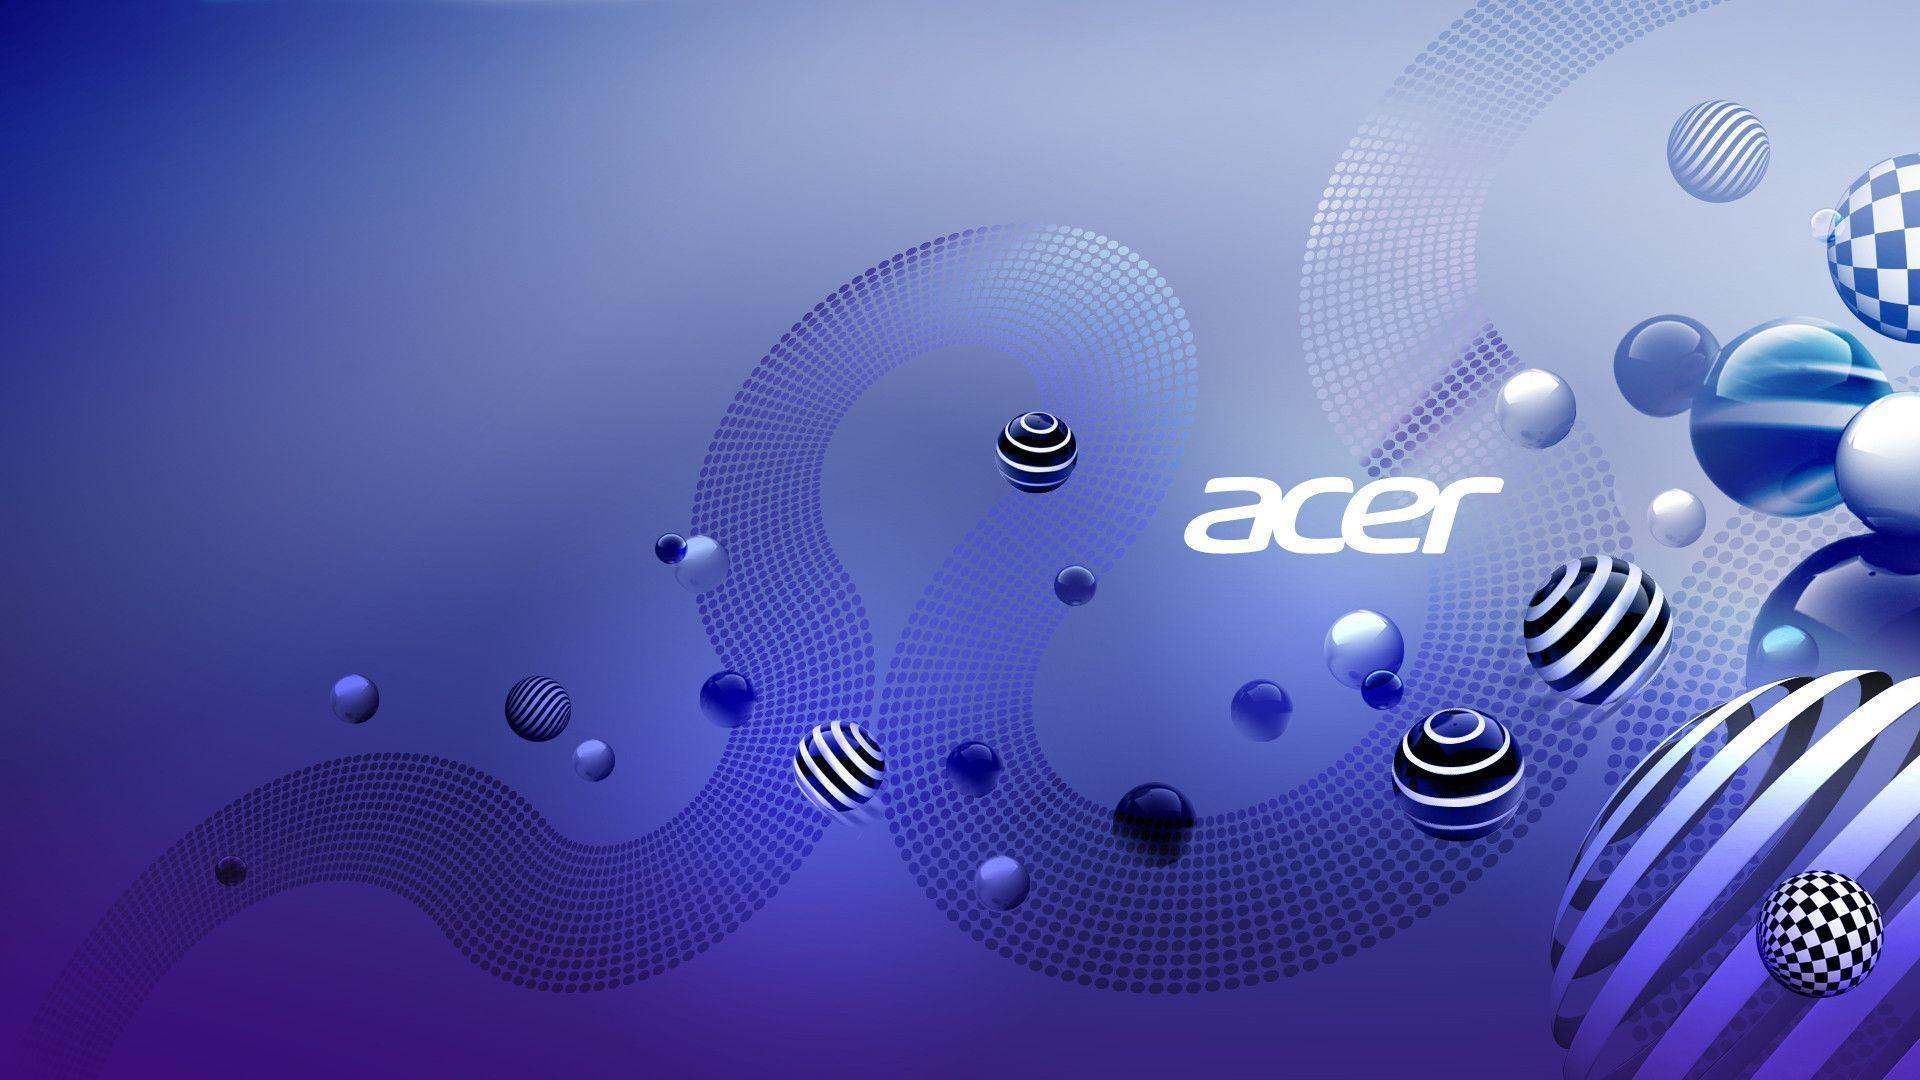 Fonds d&Acer : tous les wallpapers Acer